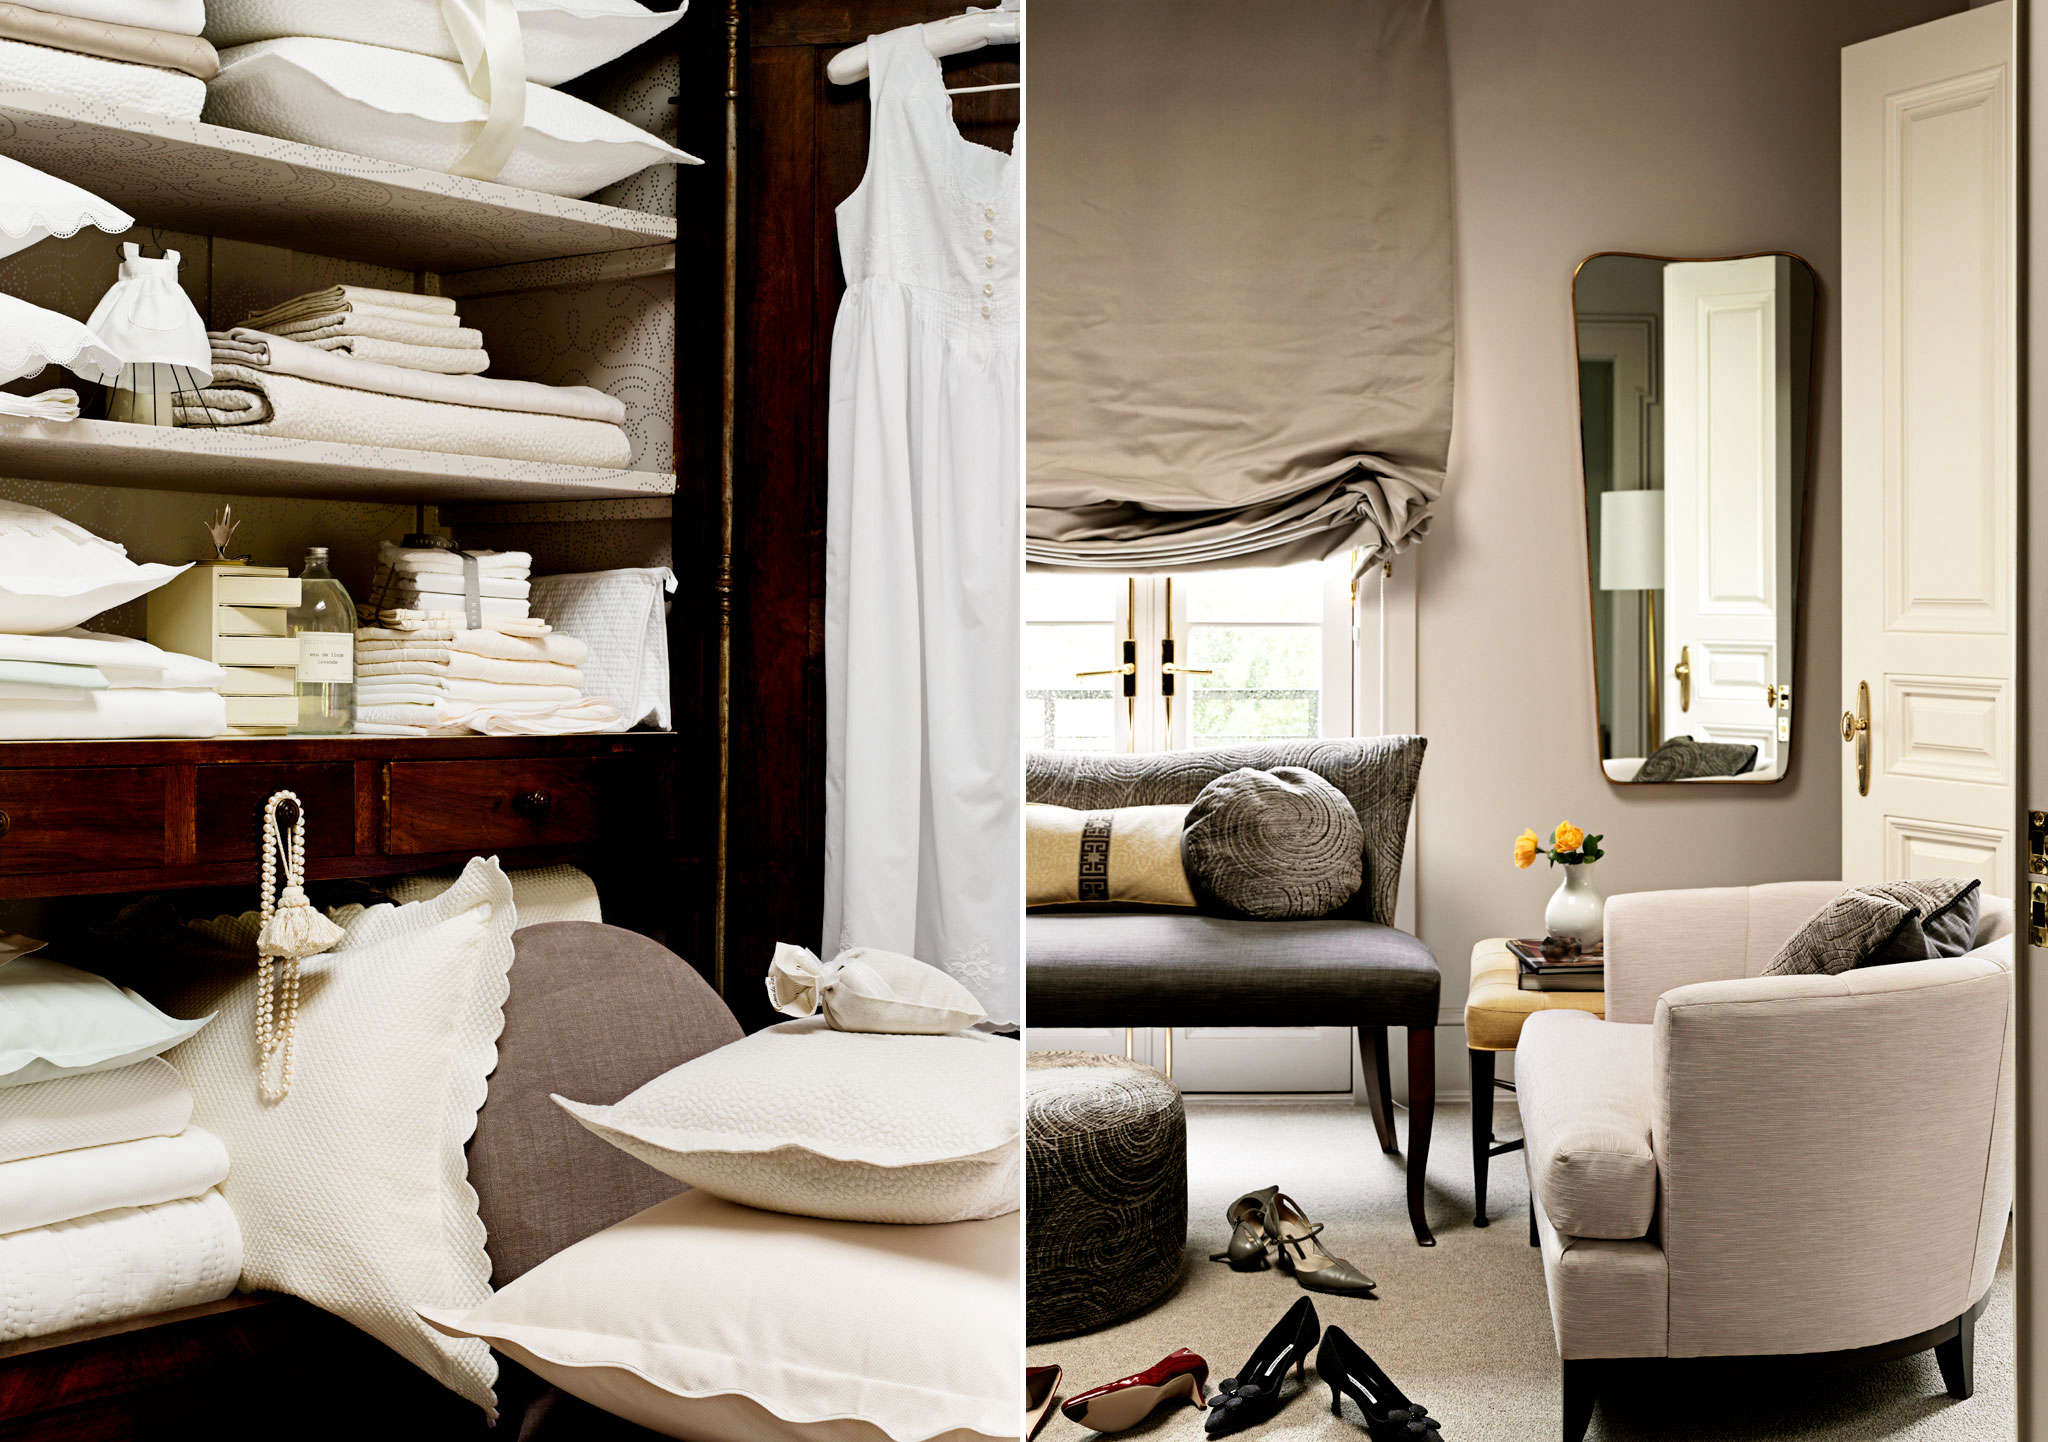 barbara barry beverly hills bedroom and closet | remodelista 14